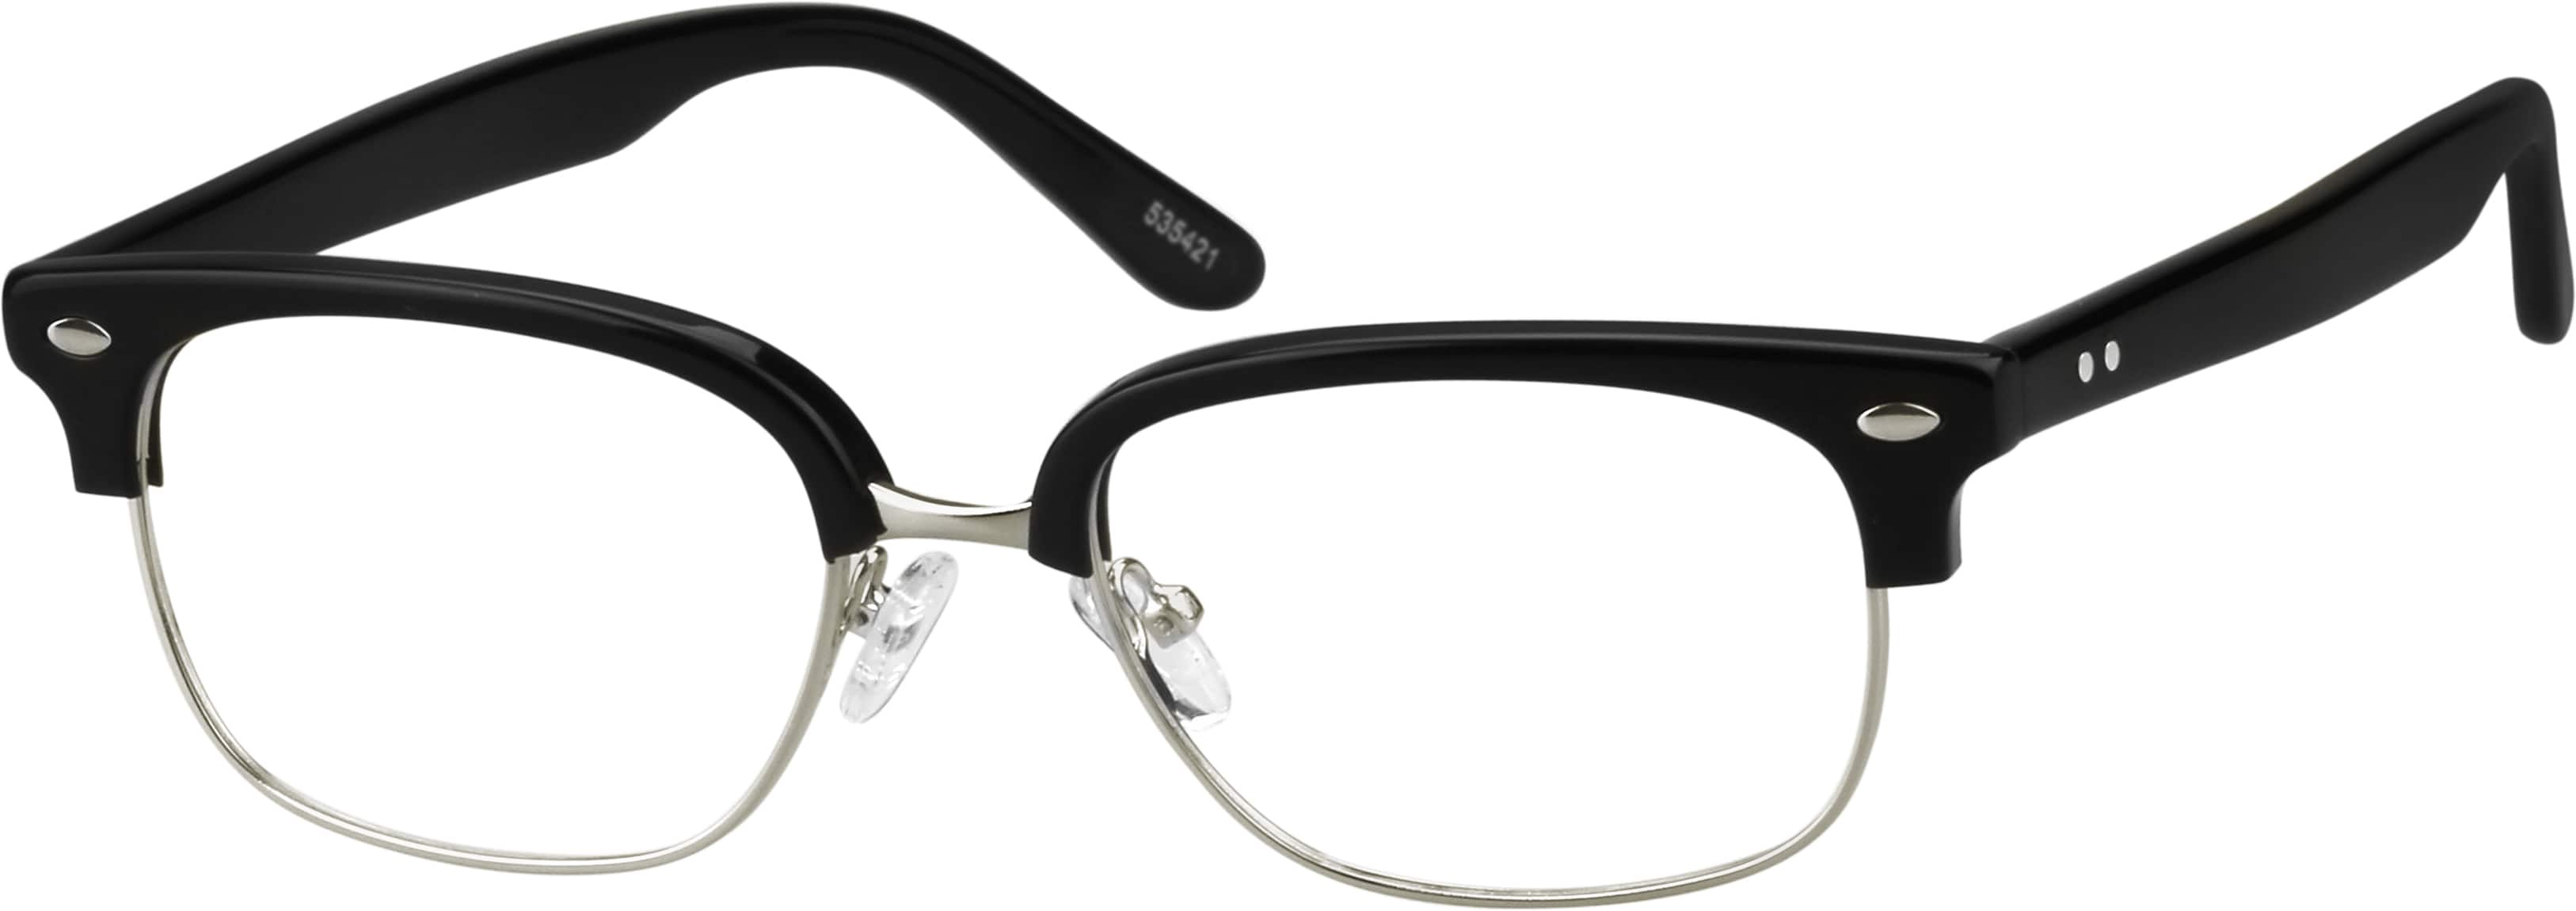 Unisex Full Rim Mixed Materials Eyeglasses #535421